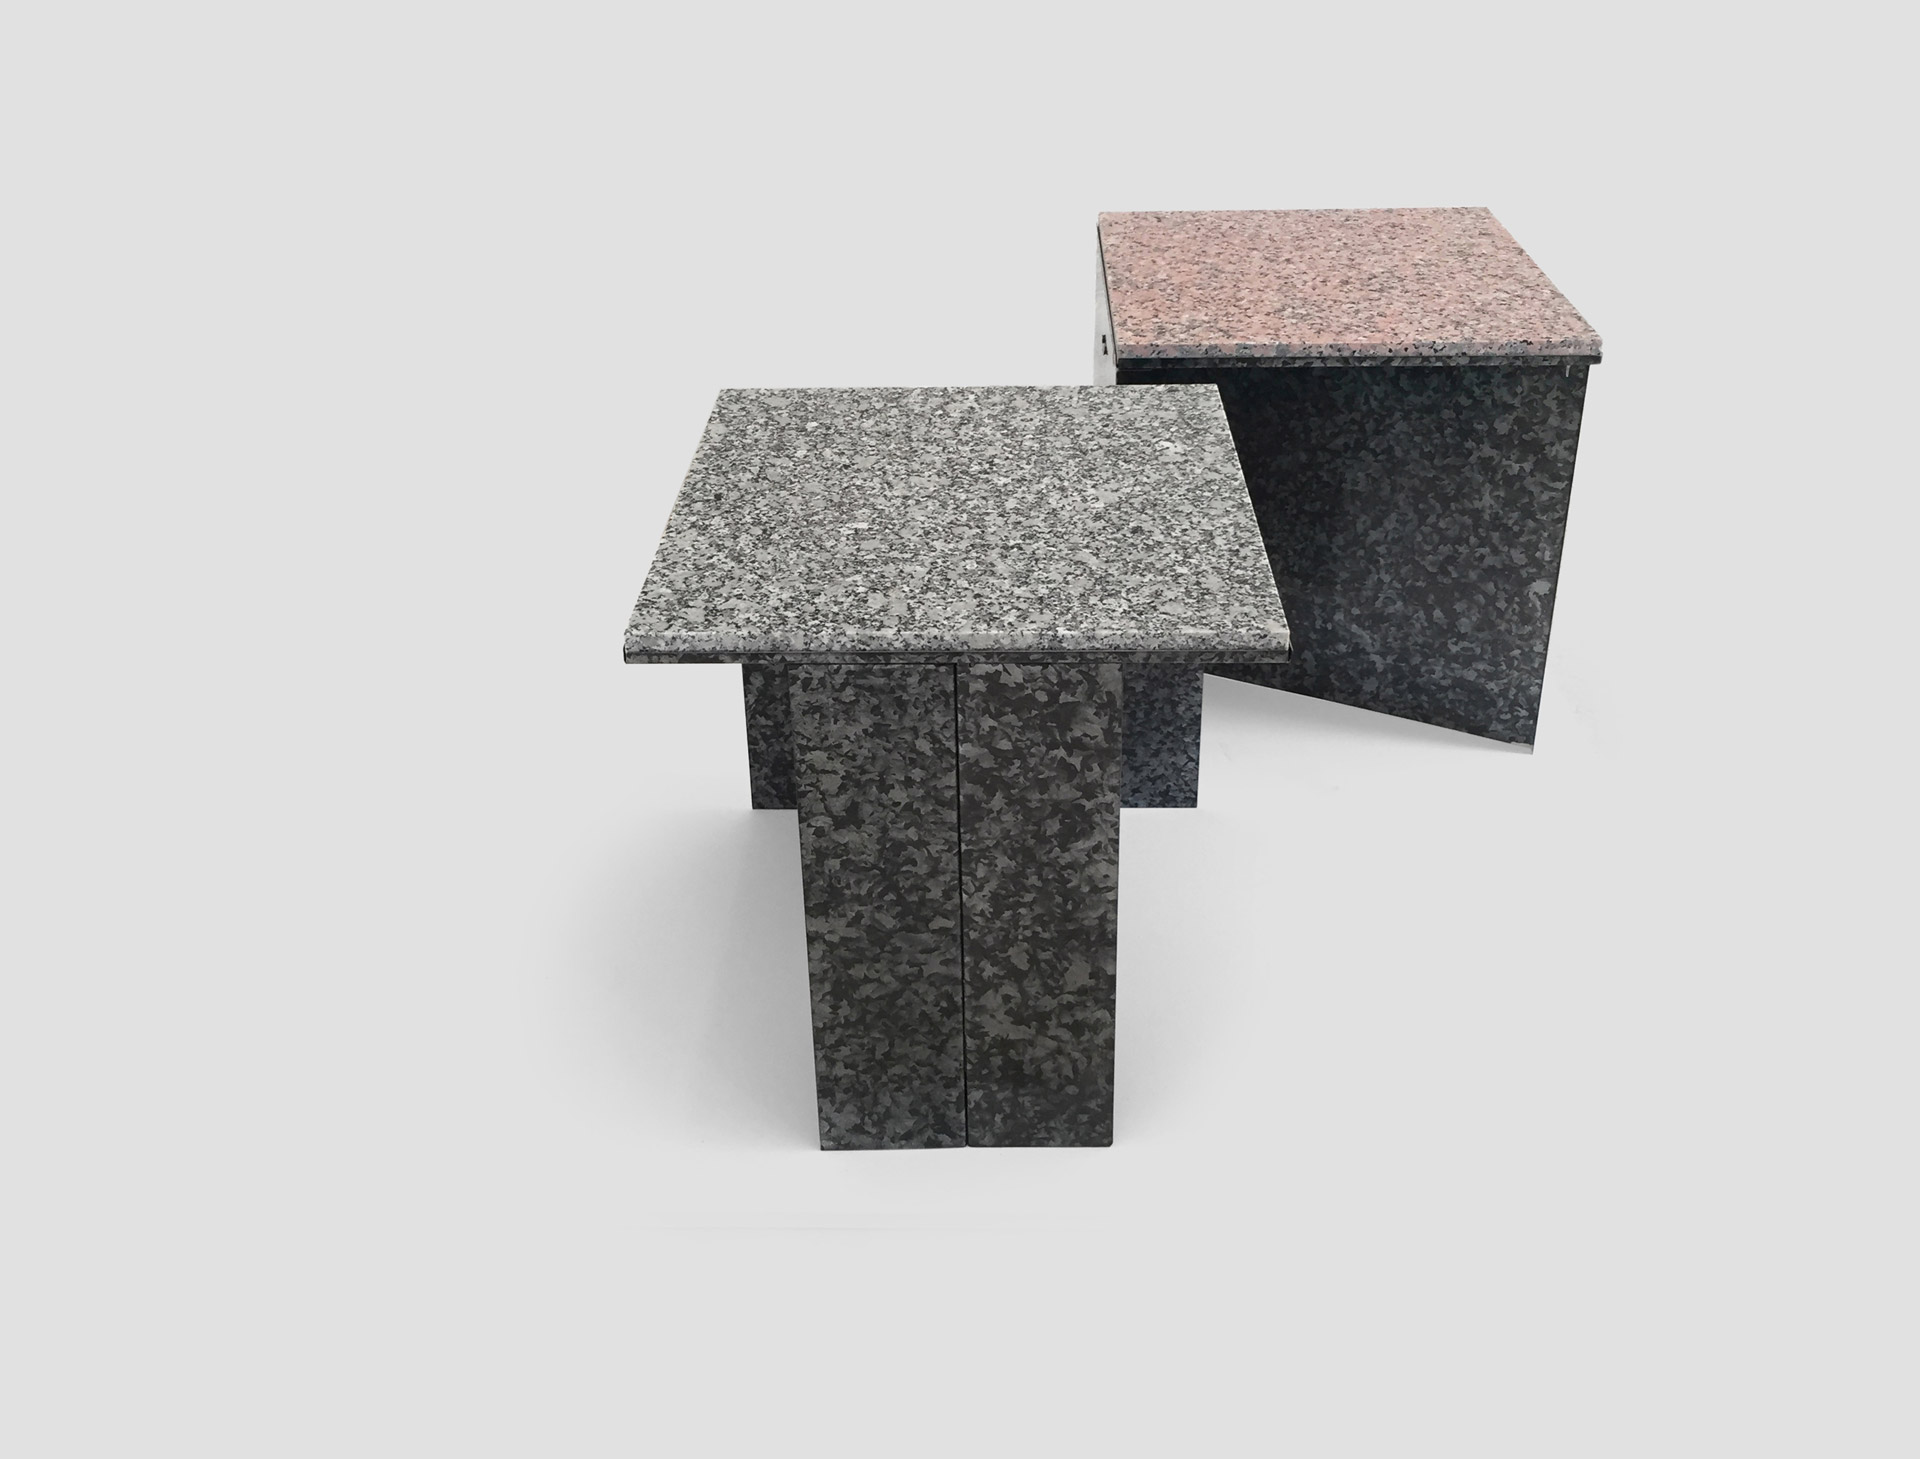 Tino Seubert Regalvanize & Granite Tables